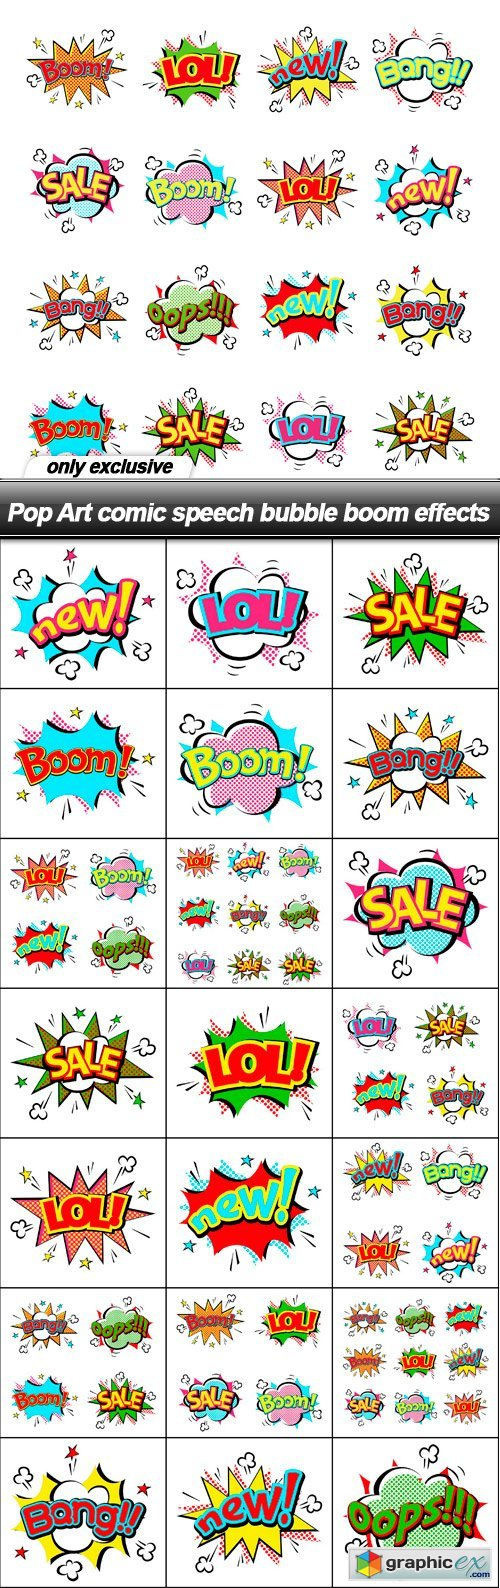 Pop Art comic speech bubble boom effects - 22 EPS